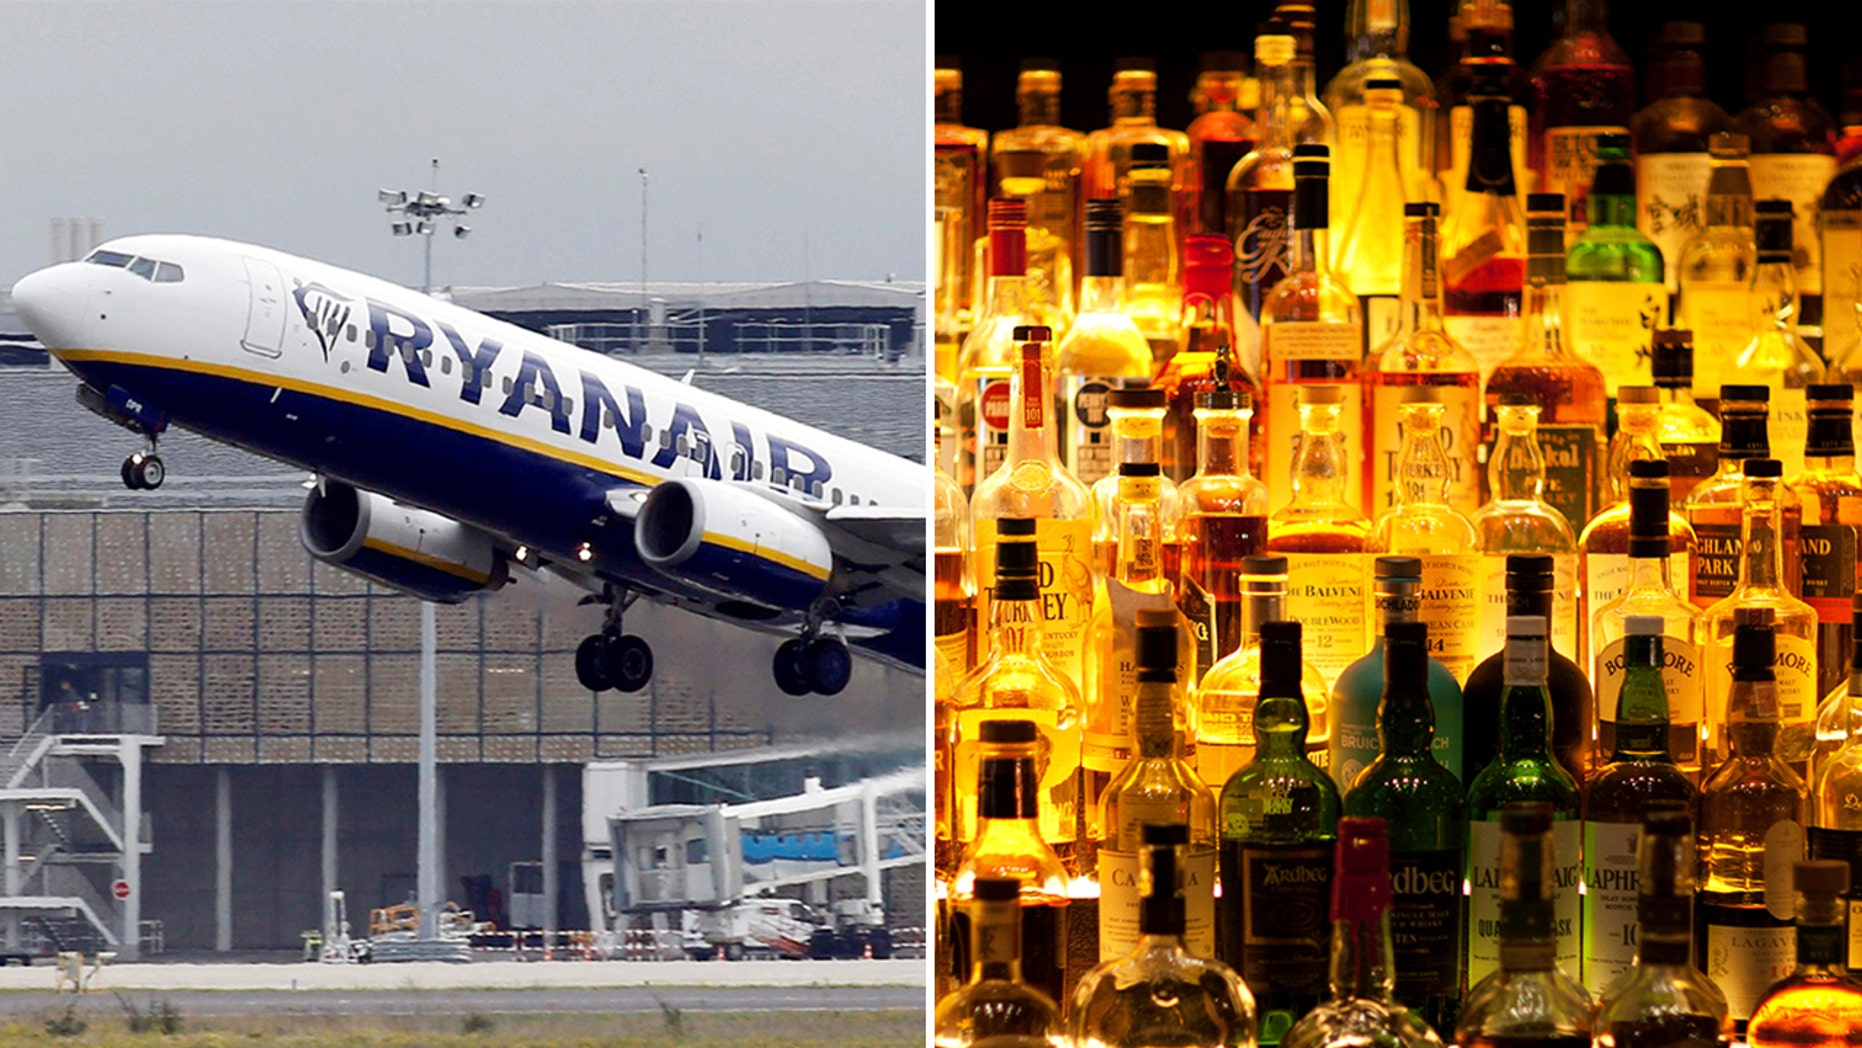 Ryanair is hoping to restrict alcohol sales at airports after a number of booze-related incidents on board.